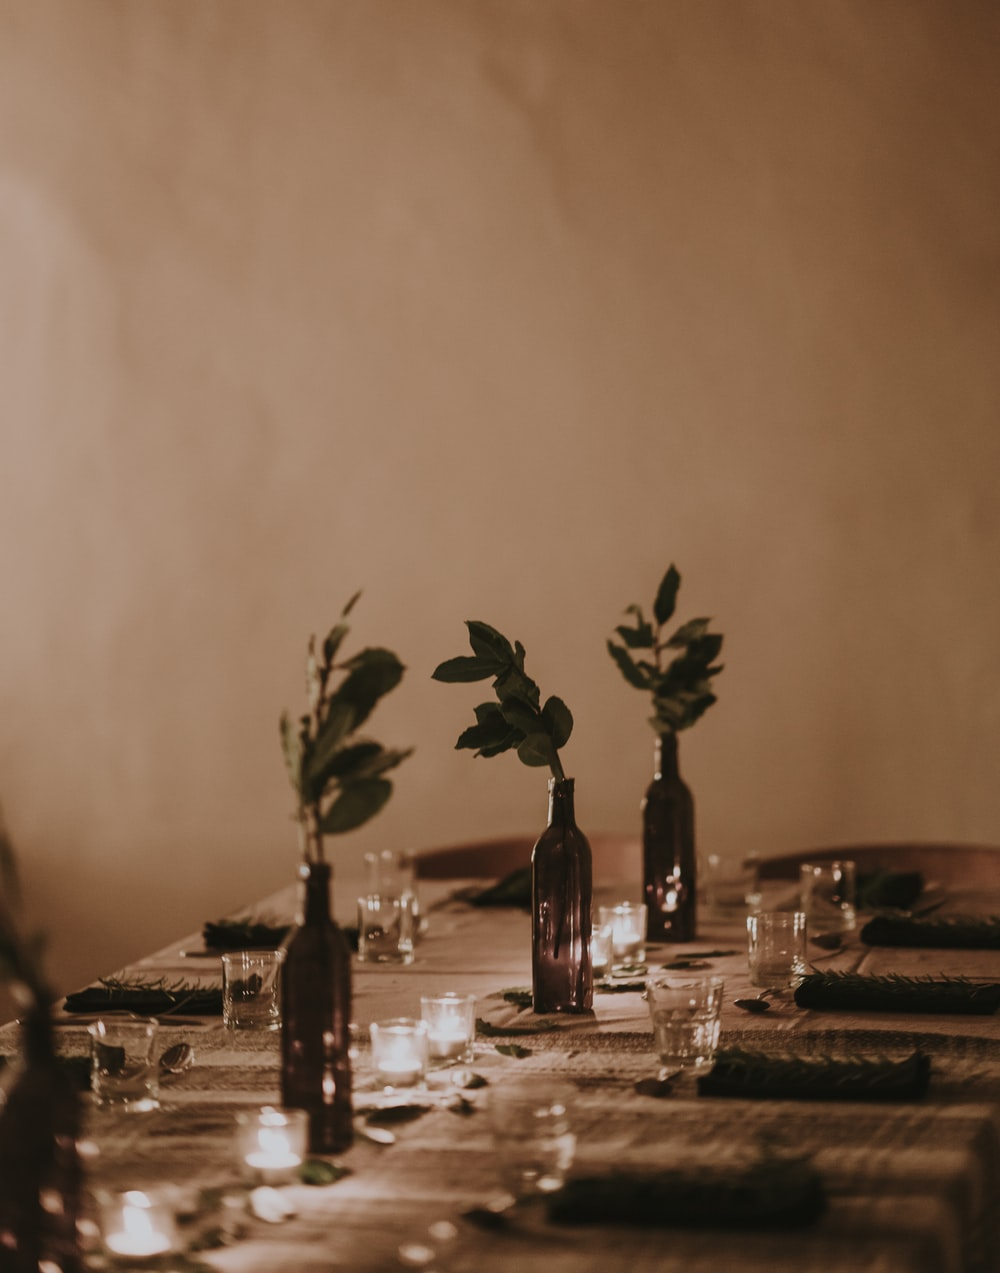 plants in bottle vases by turned on tealights on table